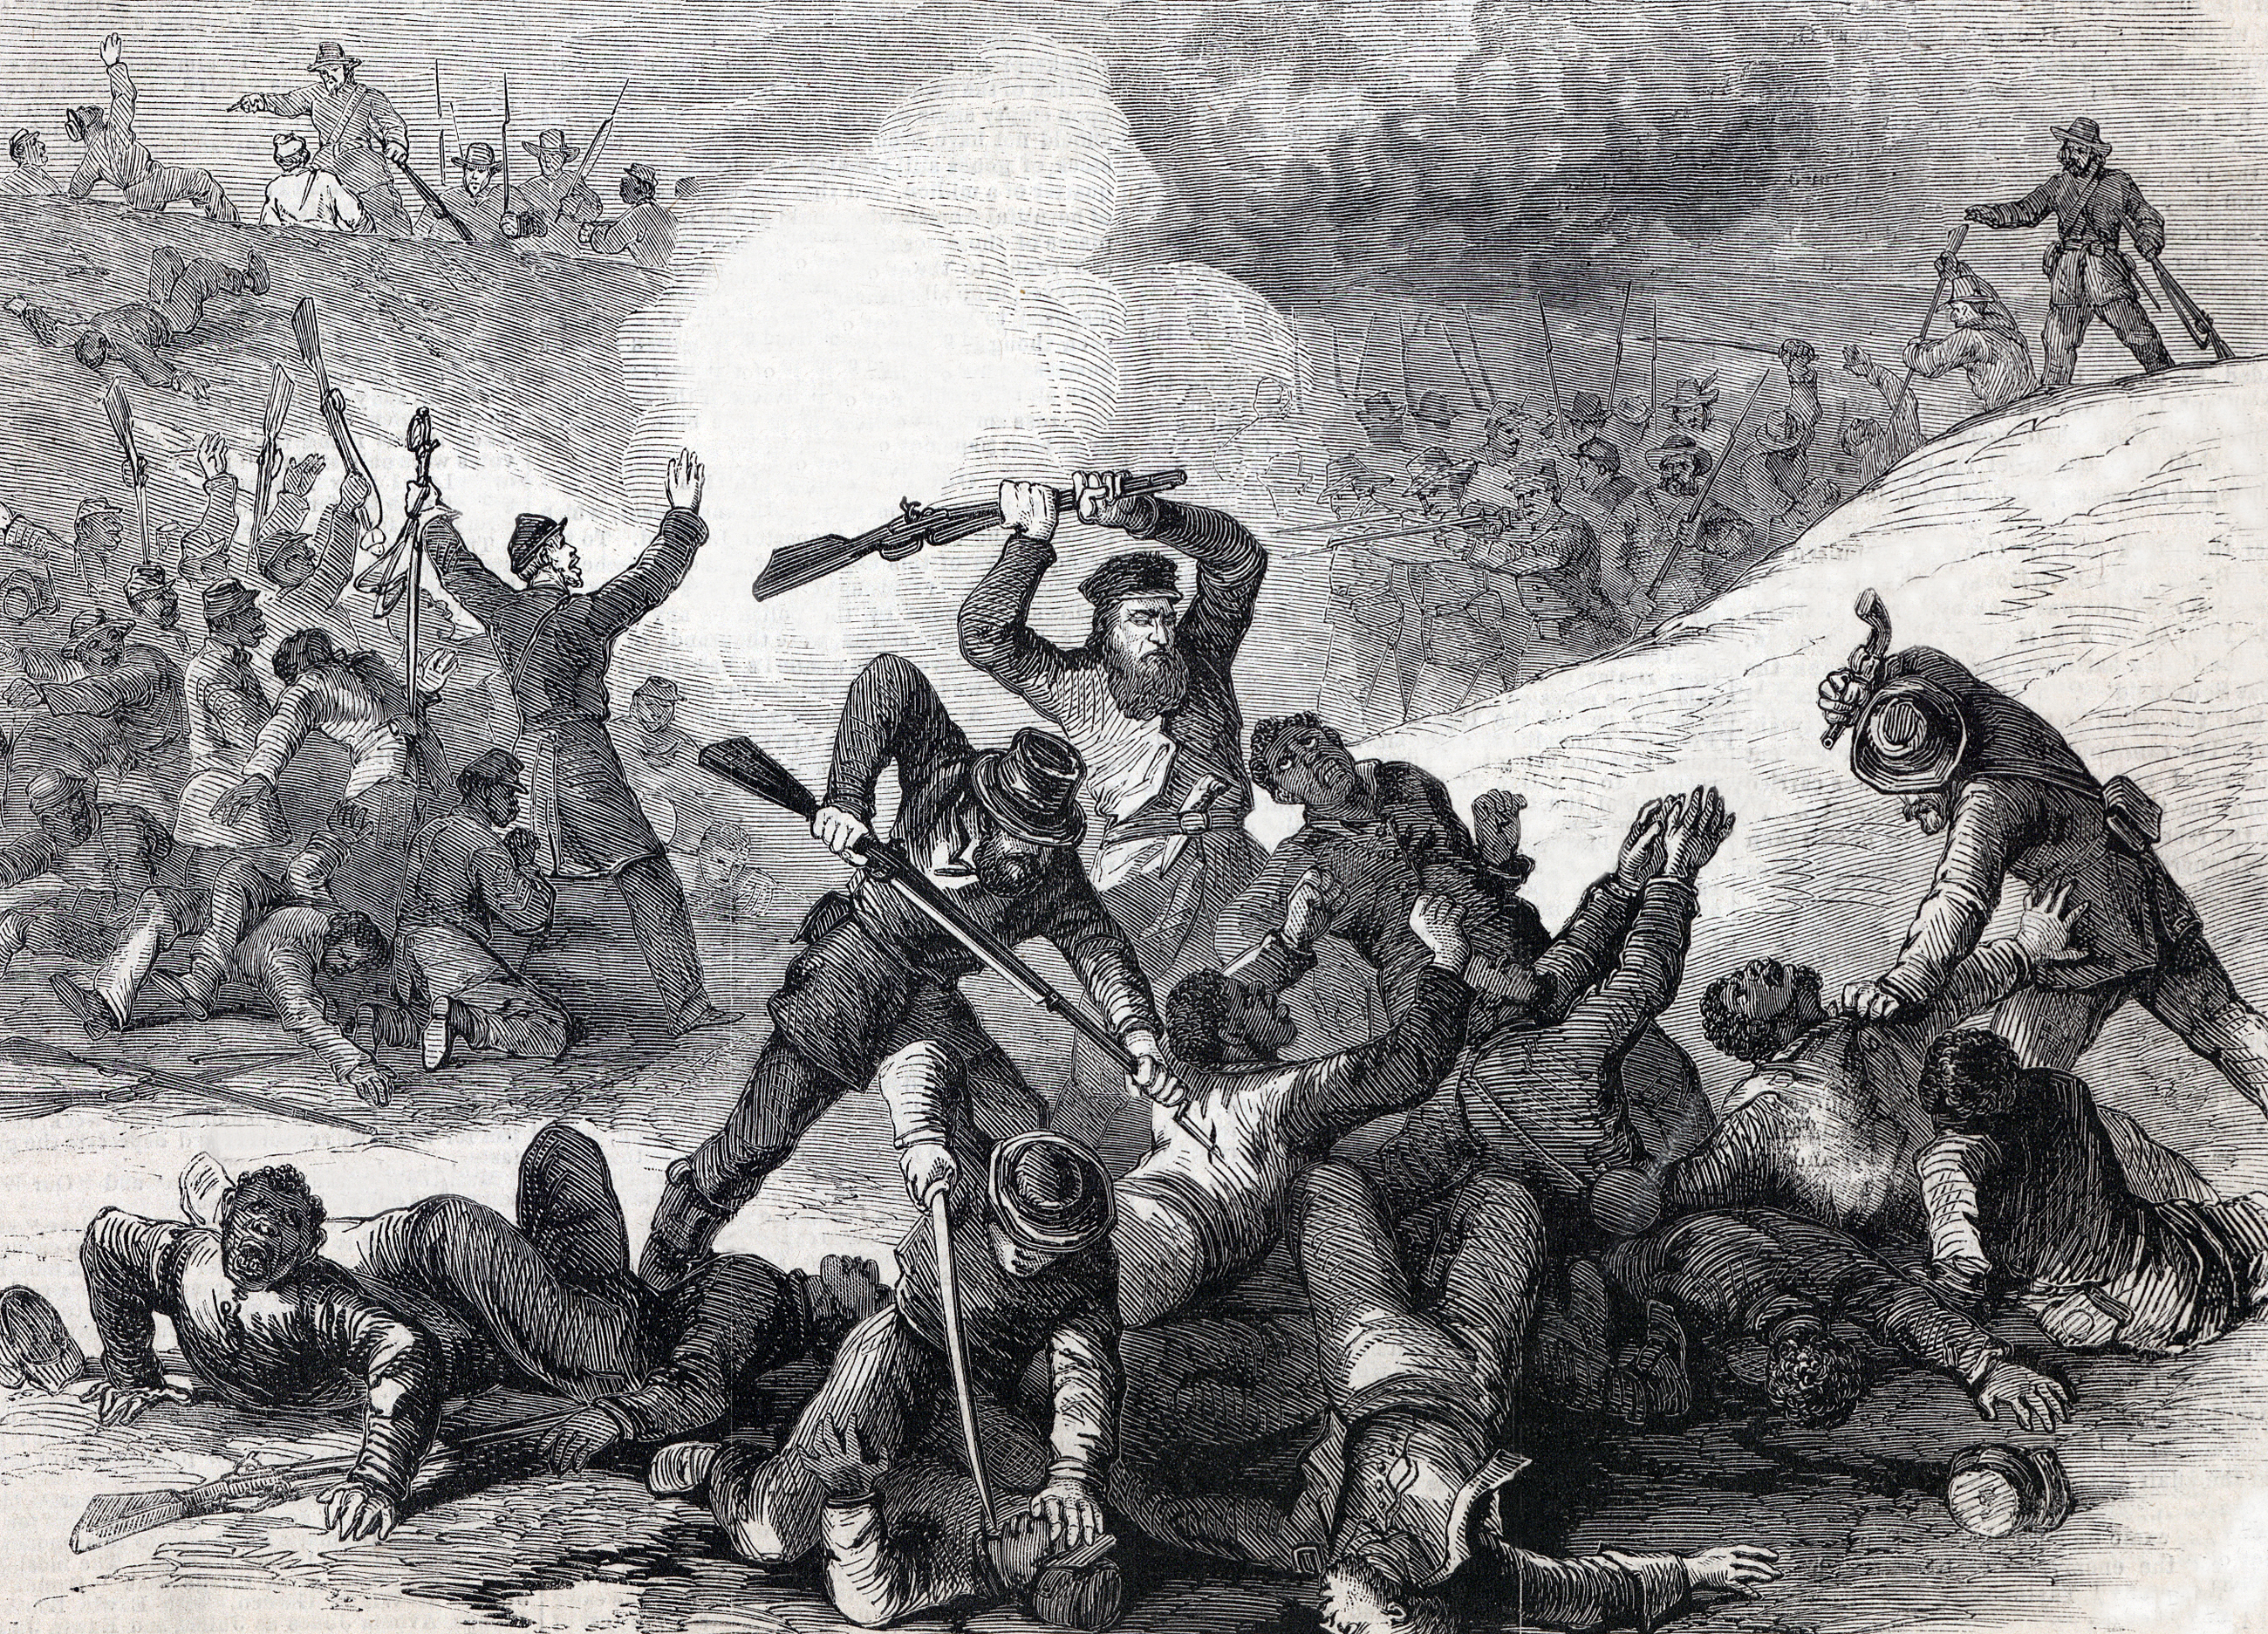 Massacre at Fort Pillow